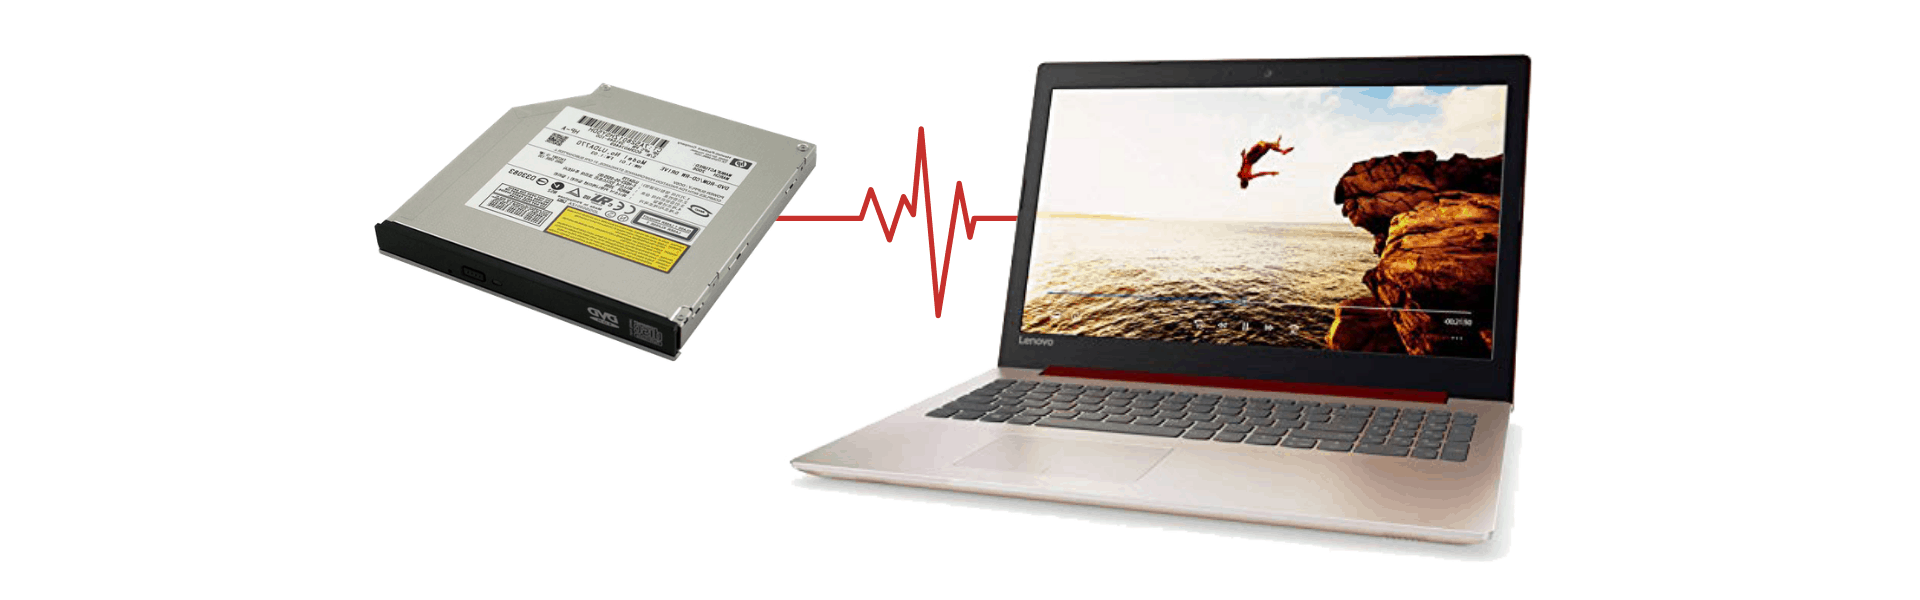 best laptop with a cd drive